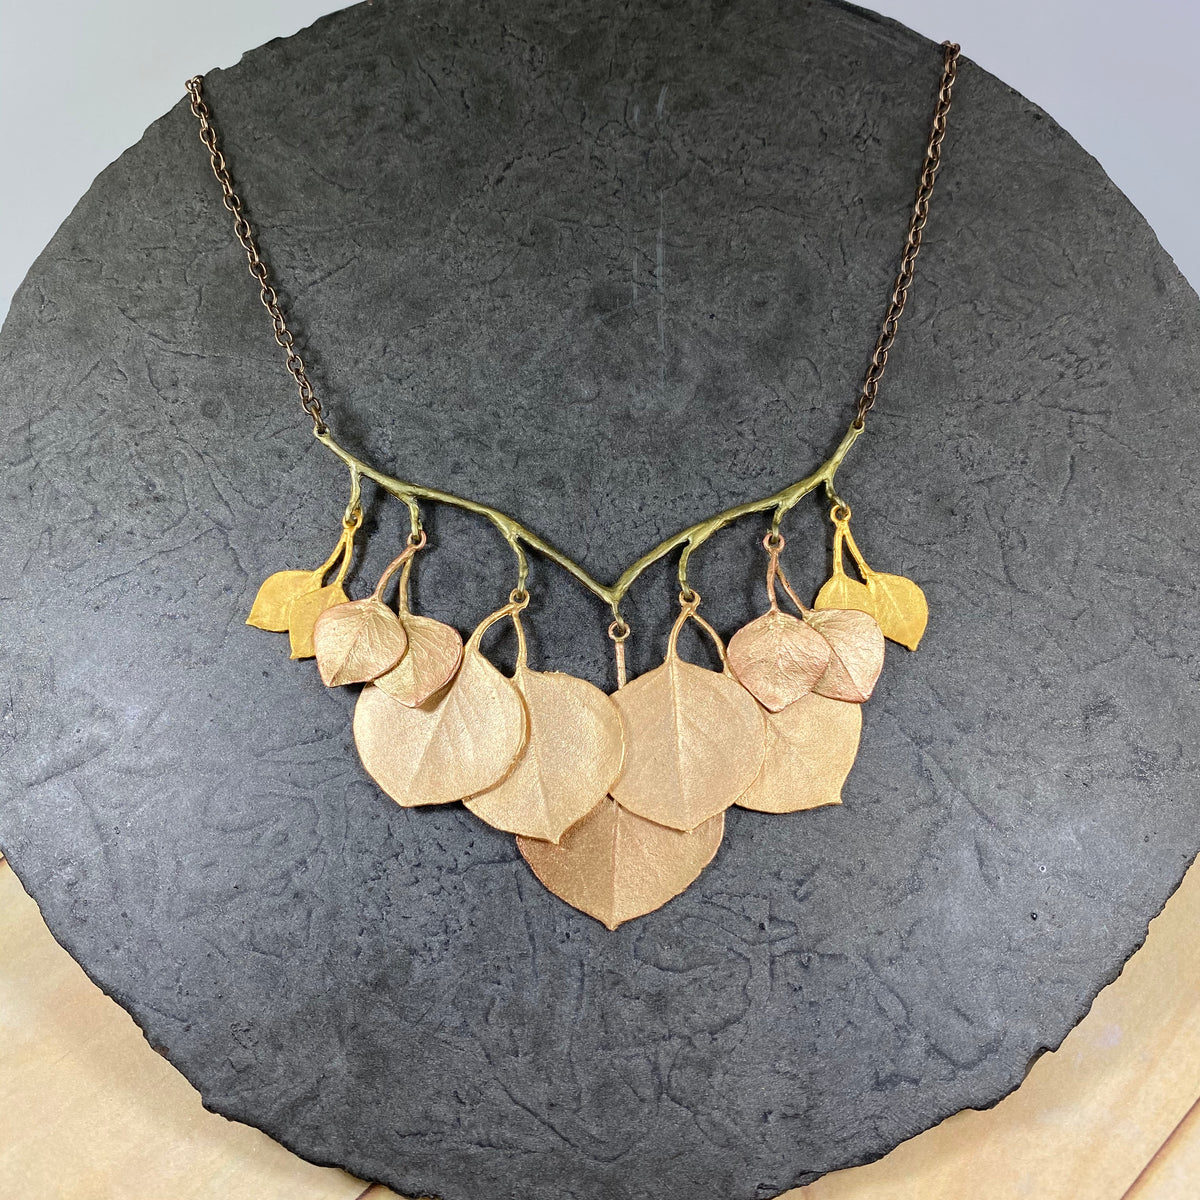 Round Leaf Eucalyptus Branch Necklace - Heart of the Home PA